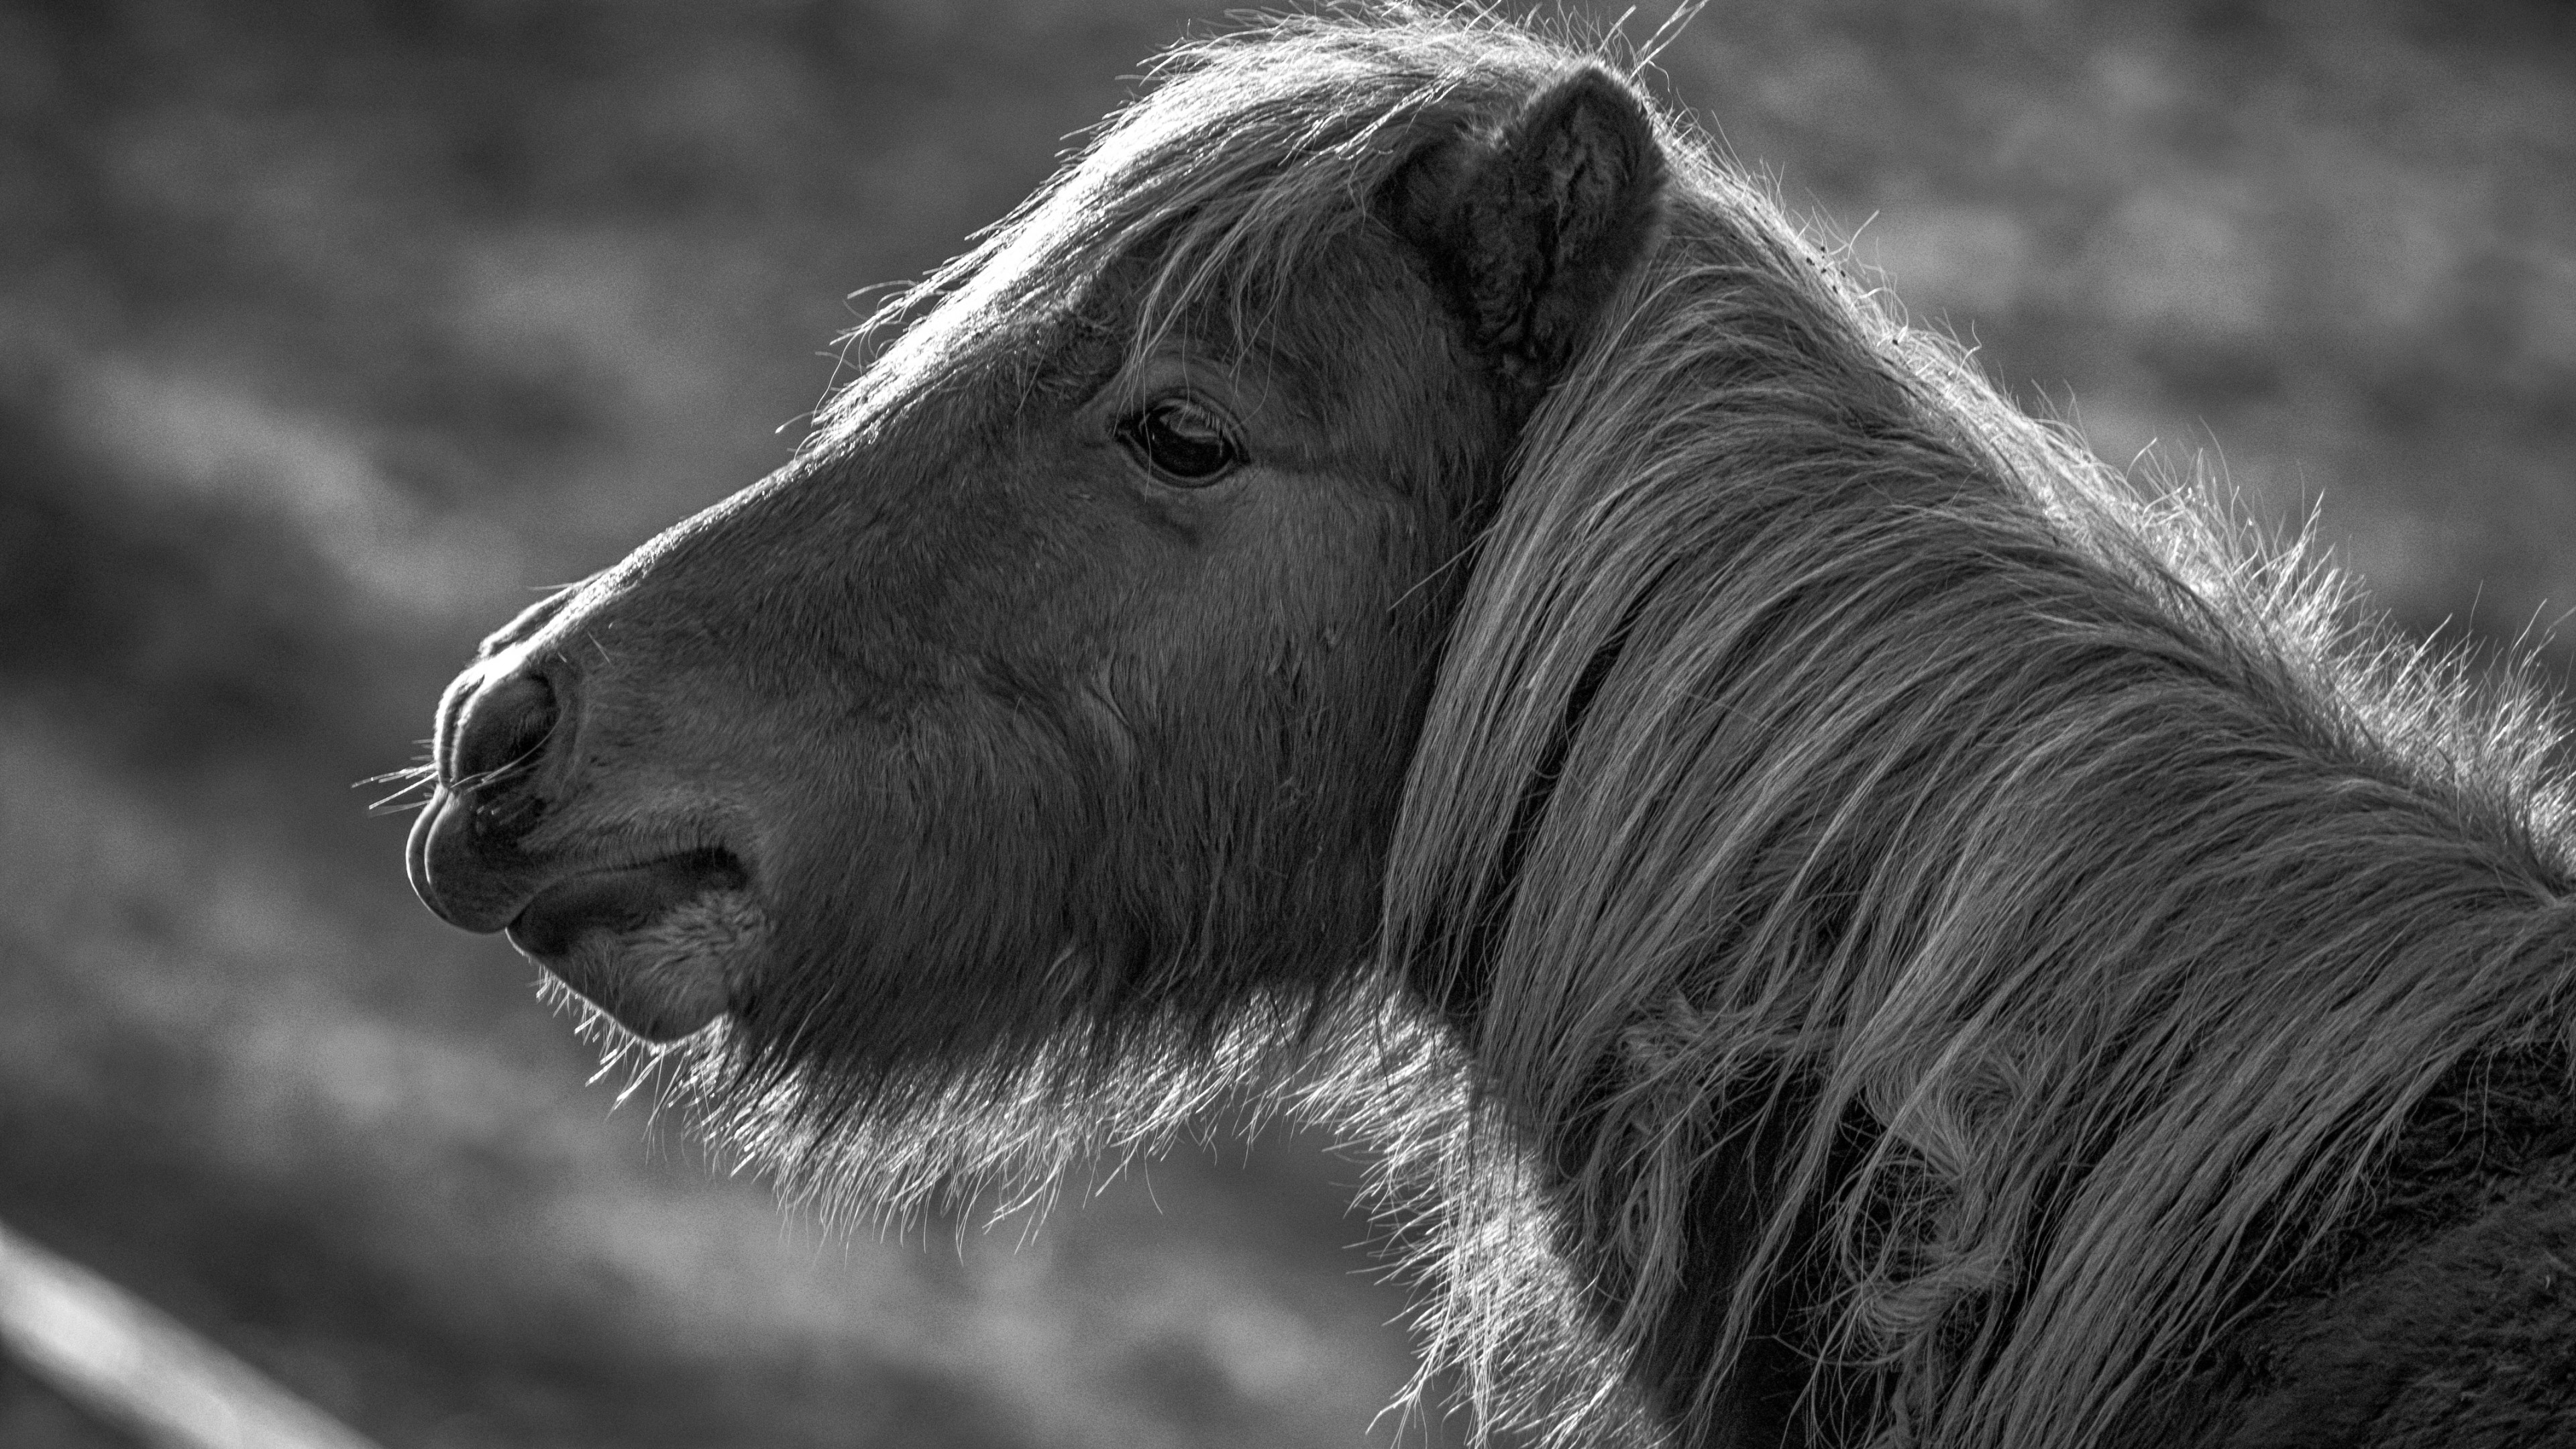 Cute Wallpapers Quotes For Girls Wallpaper Horse Pony Black And White Animals 10358